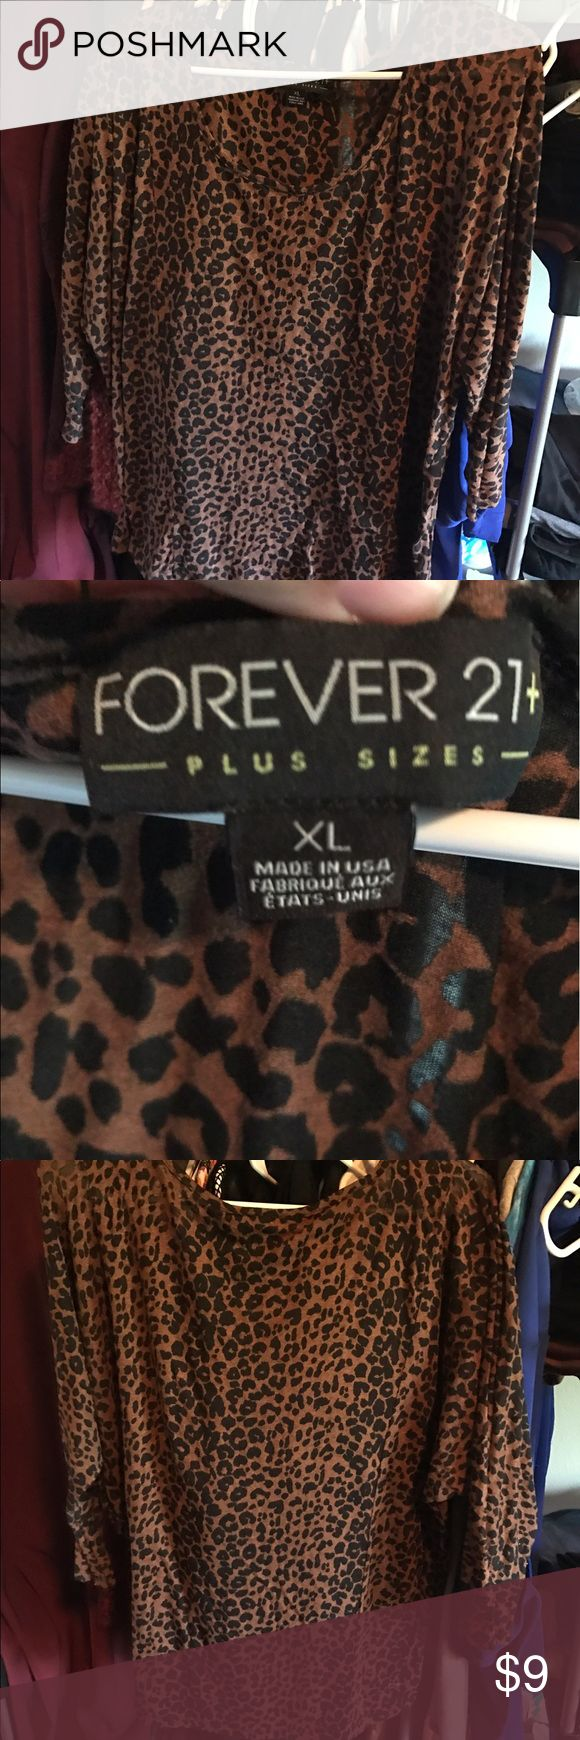 Woman's Xl Cheetah print shirt Forever 21 woman's plus size cheetah shirt. Kind of see there. Lightly worn. Willing to sale or trade. Forever 21 Tops Blouses